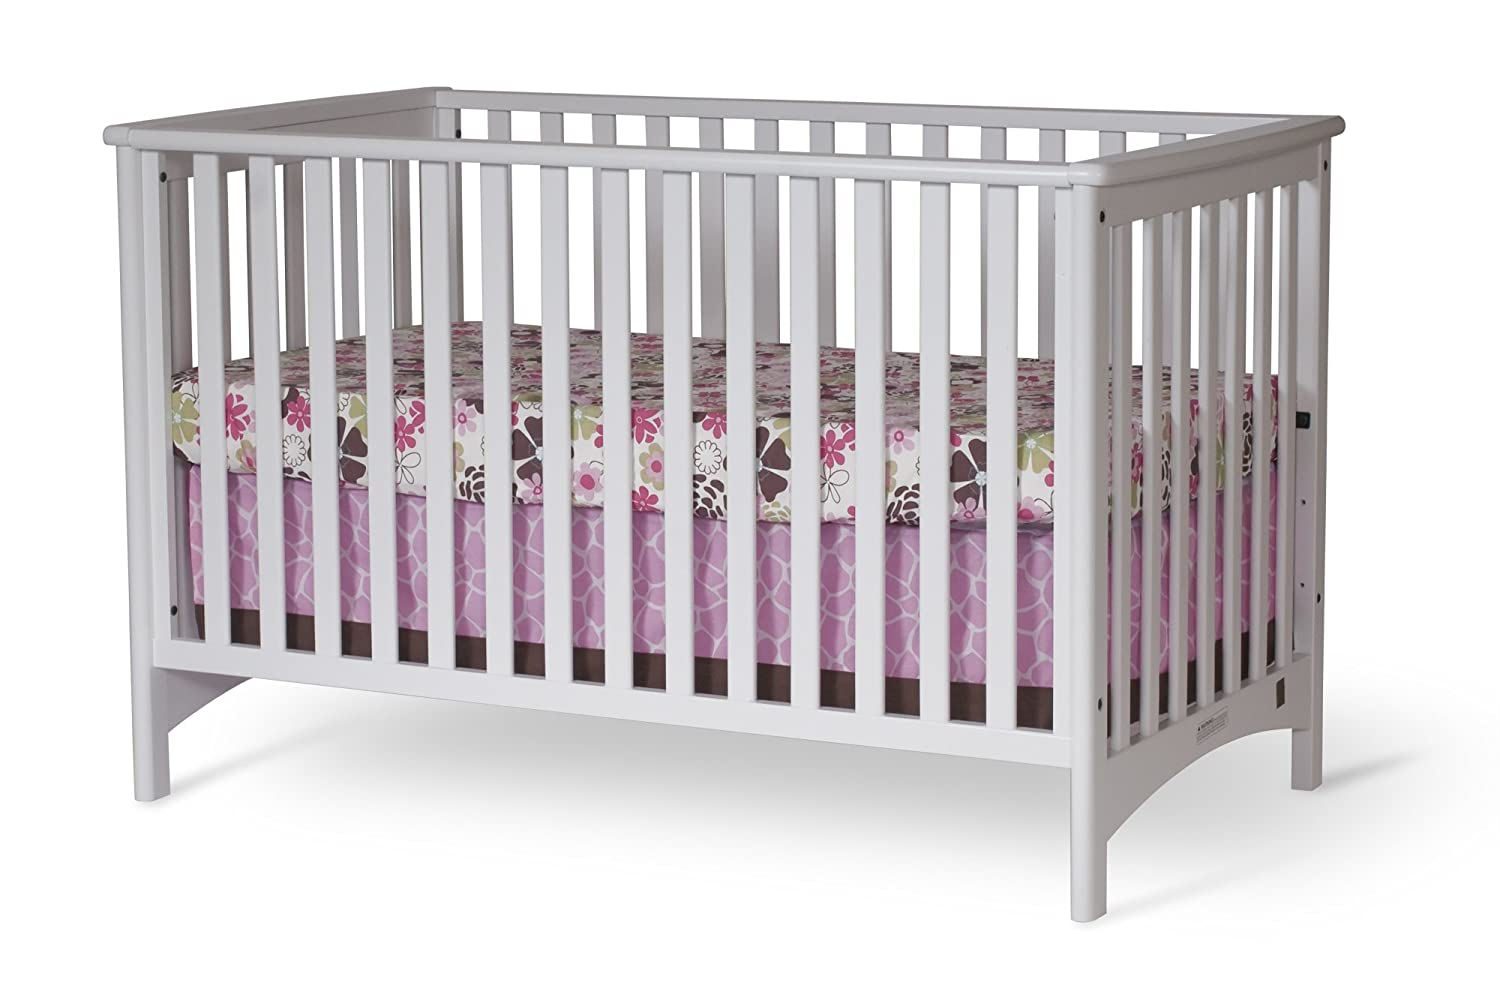 Amazon.com: Child Craft London Euro Style Stationary Crib, Matte White: Baby - Amazon.com: Child Craft London Euro Style Stationary Crib, Matte